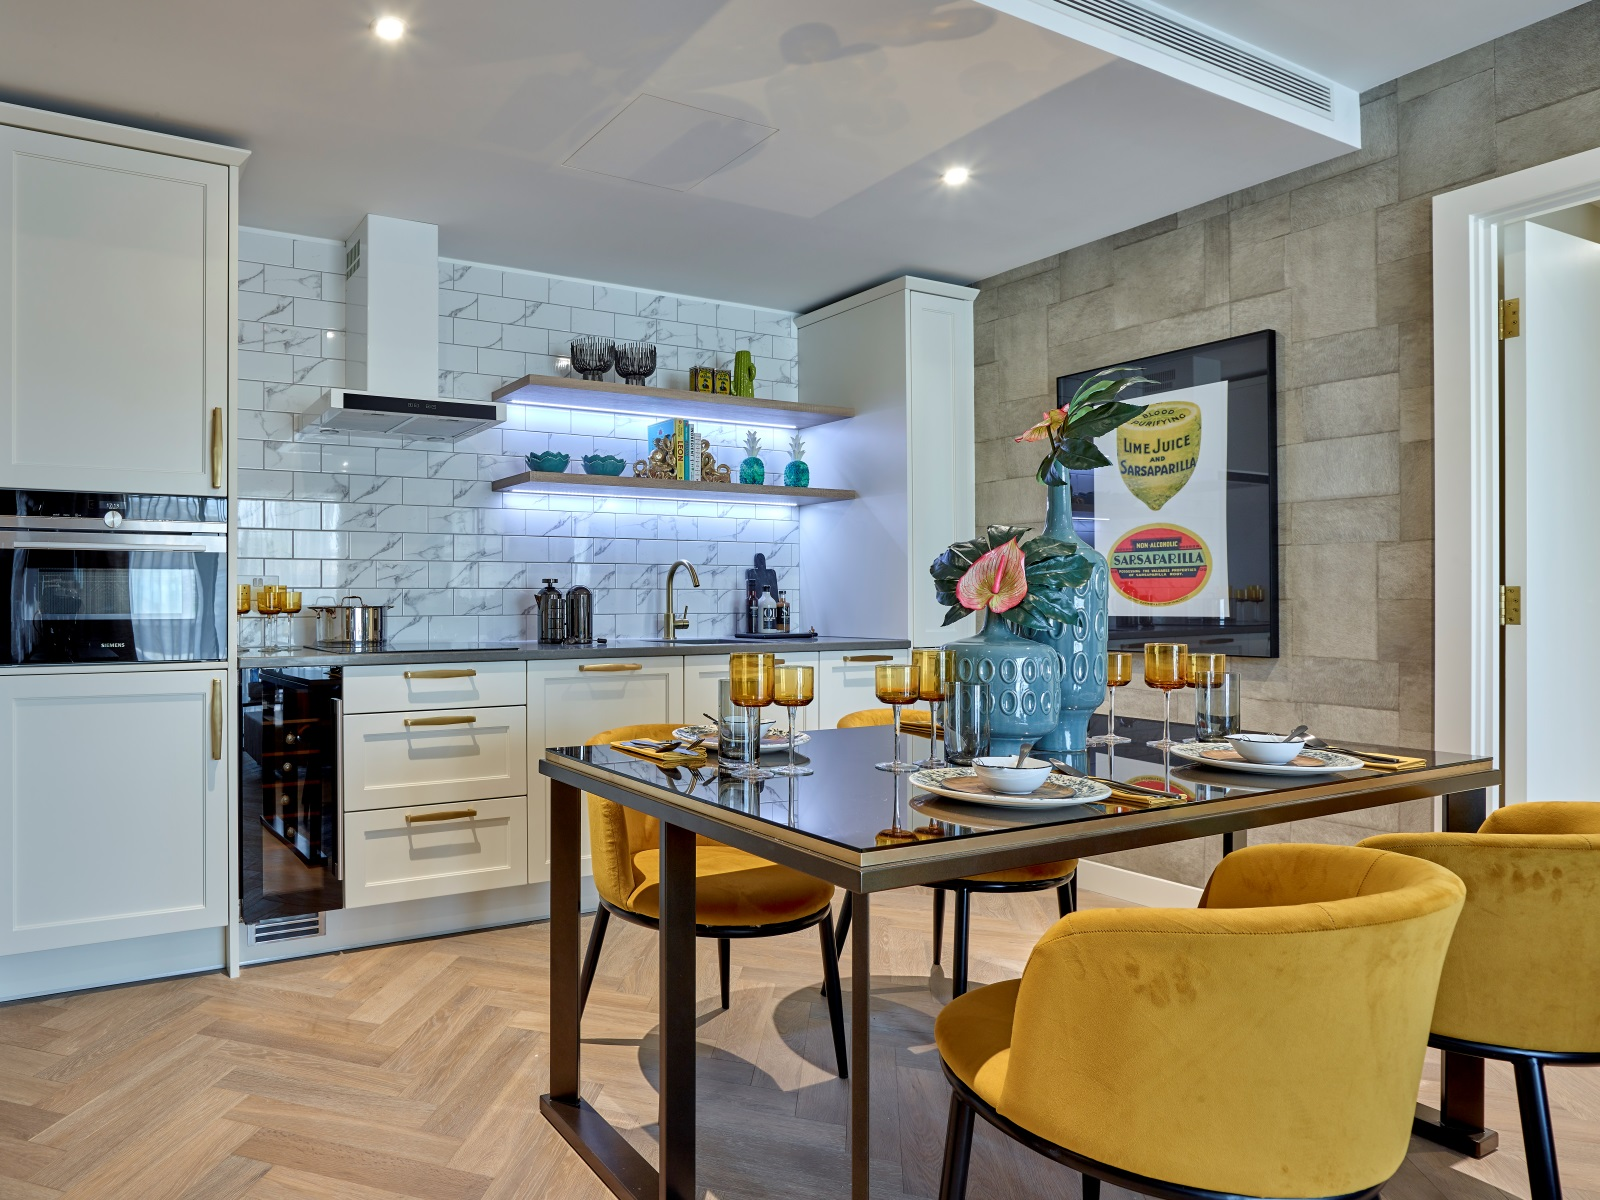 Properties for Sale in London, United Kingdom - CBRE Residential